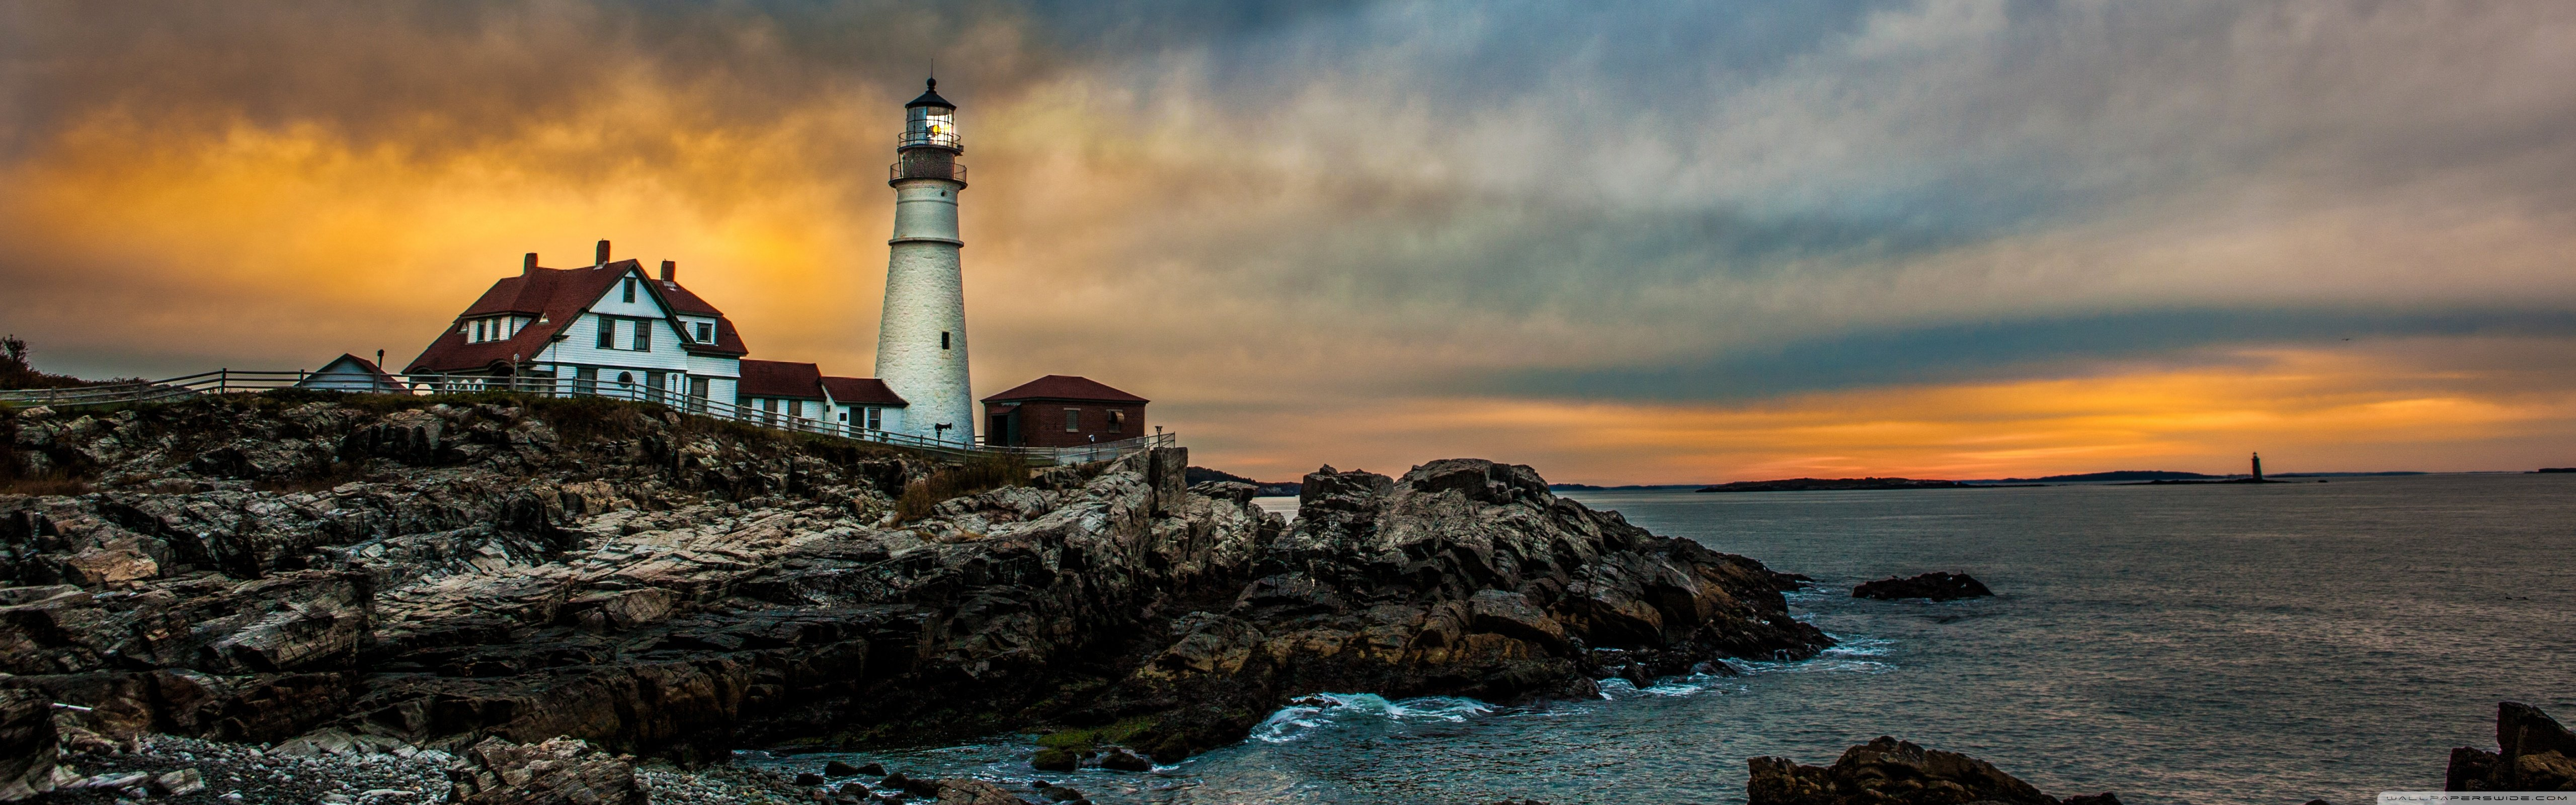 Portland Head Light Lighthouse 4K HD Desktop Wallpaper for 4K 5120x1600